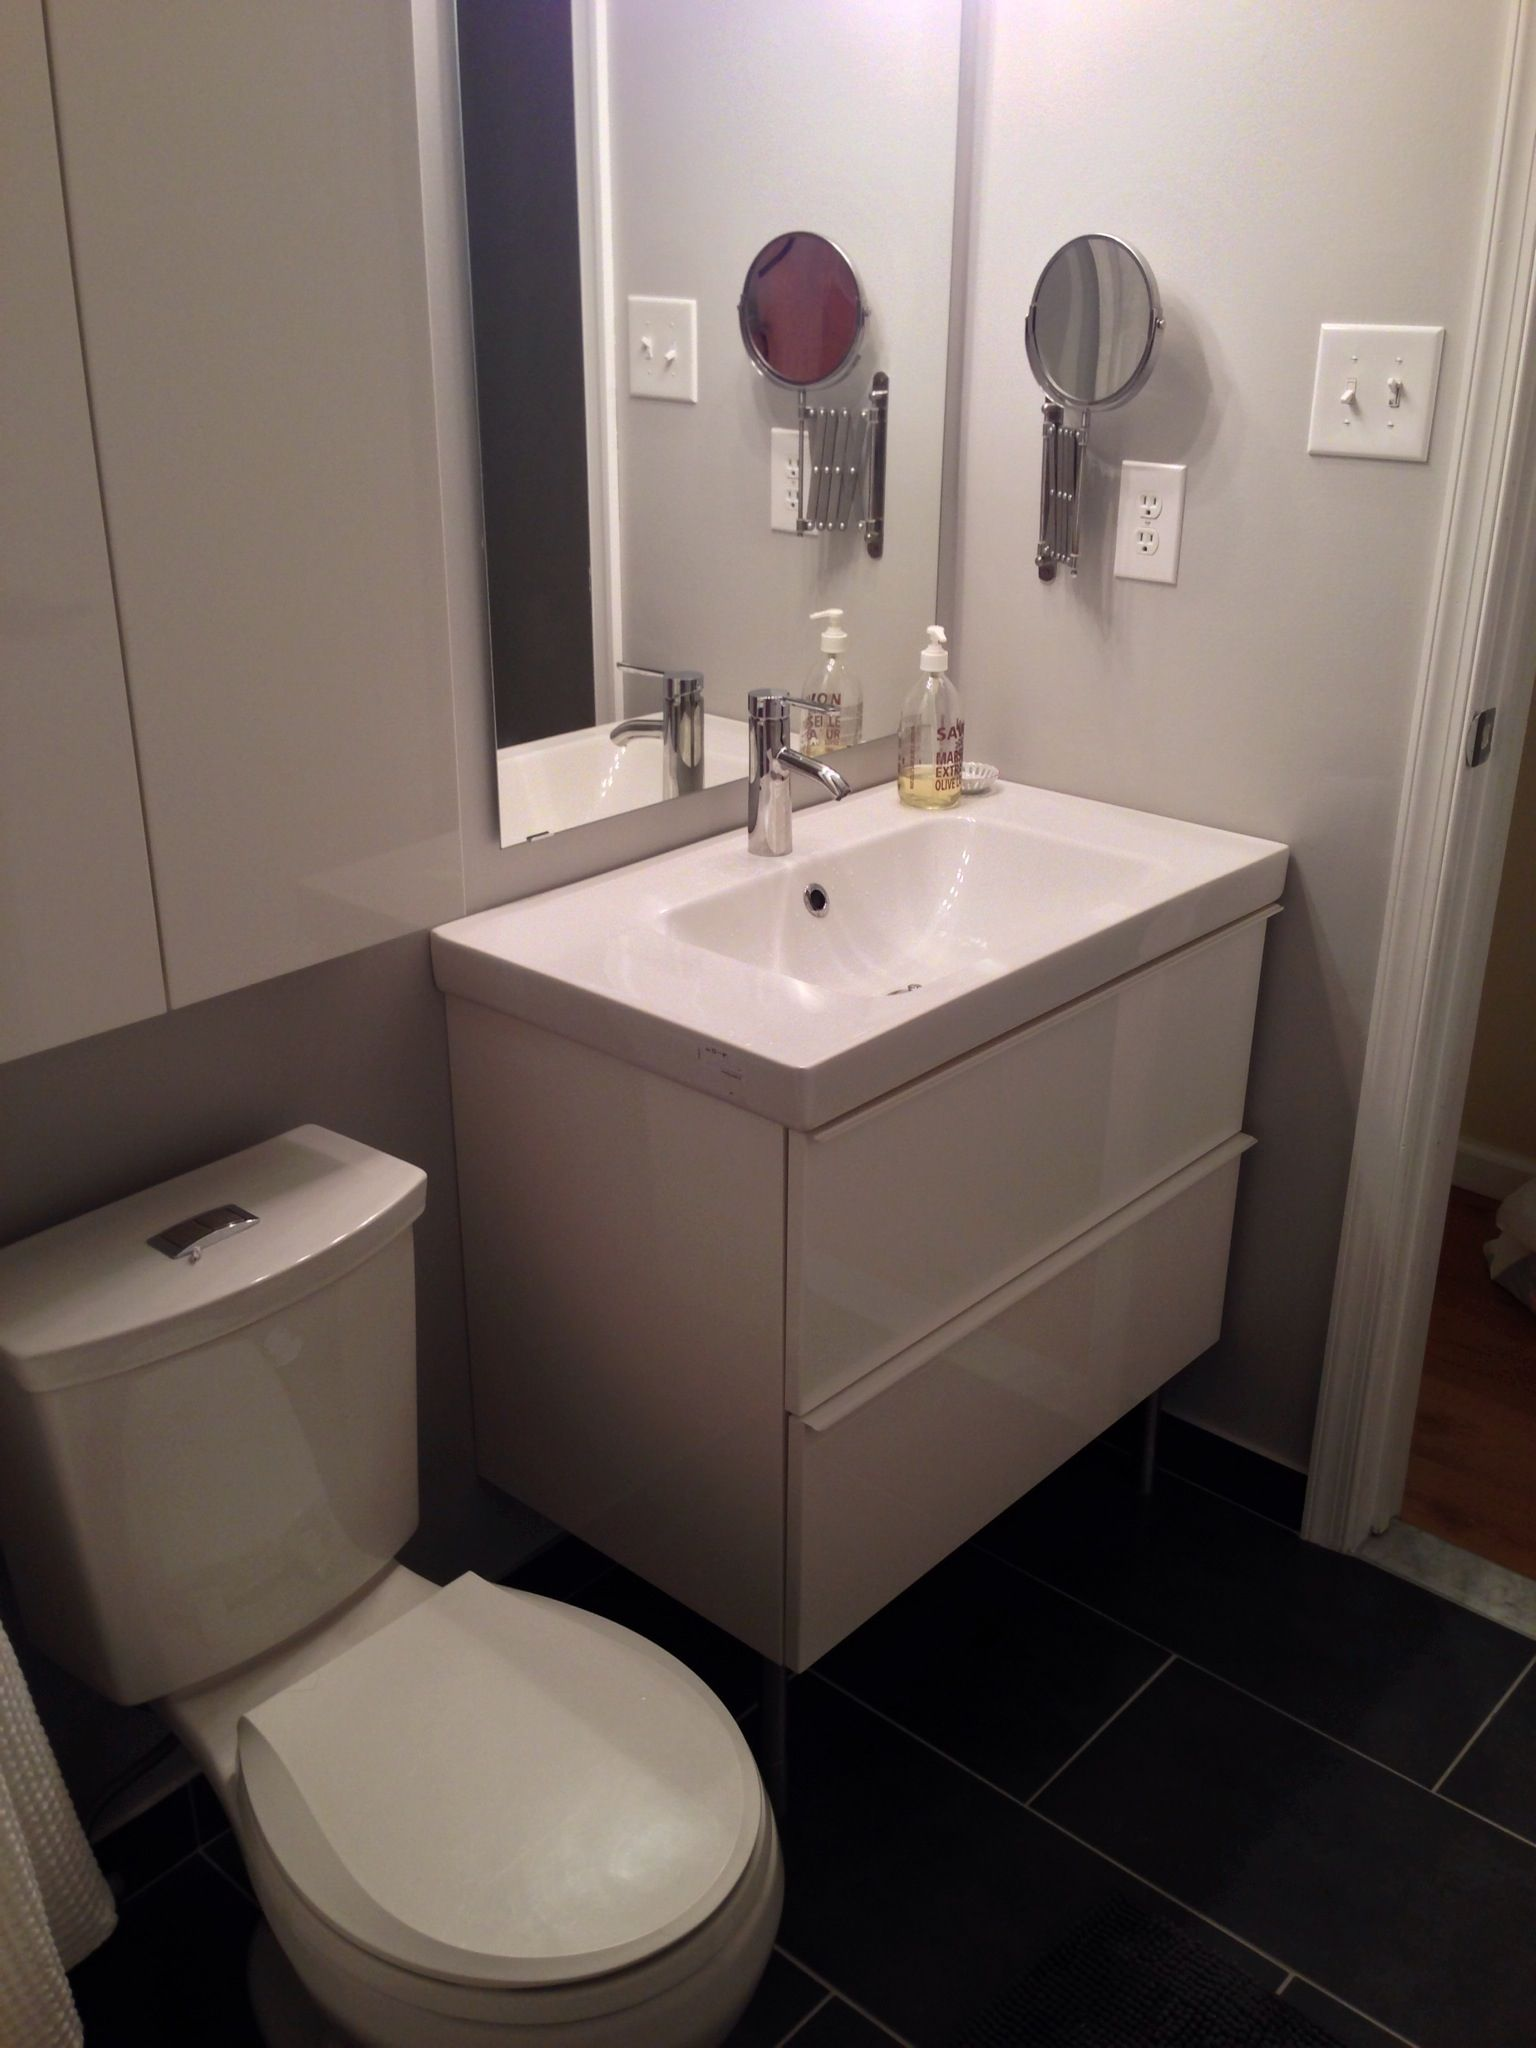 Ikea Godmorgon Vanity With Sink In Glossy White Ikea Bathroom Small Bathroom Vanities Small Bathroom Sinks